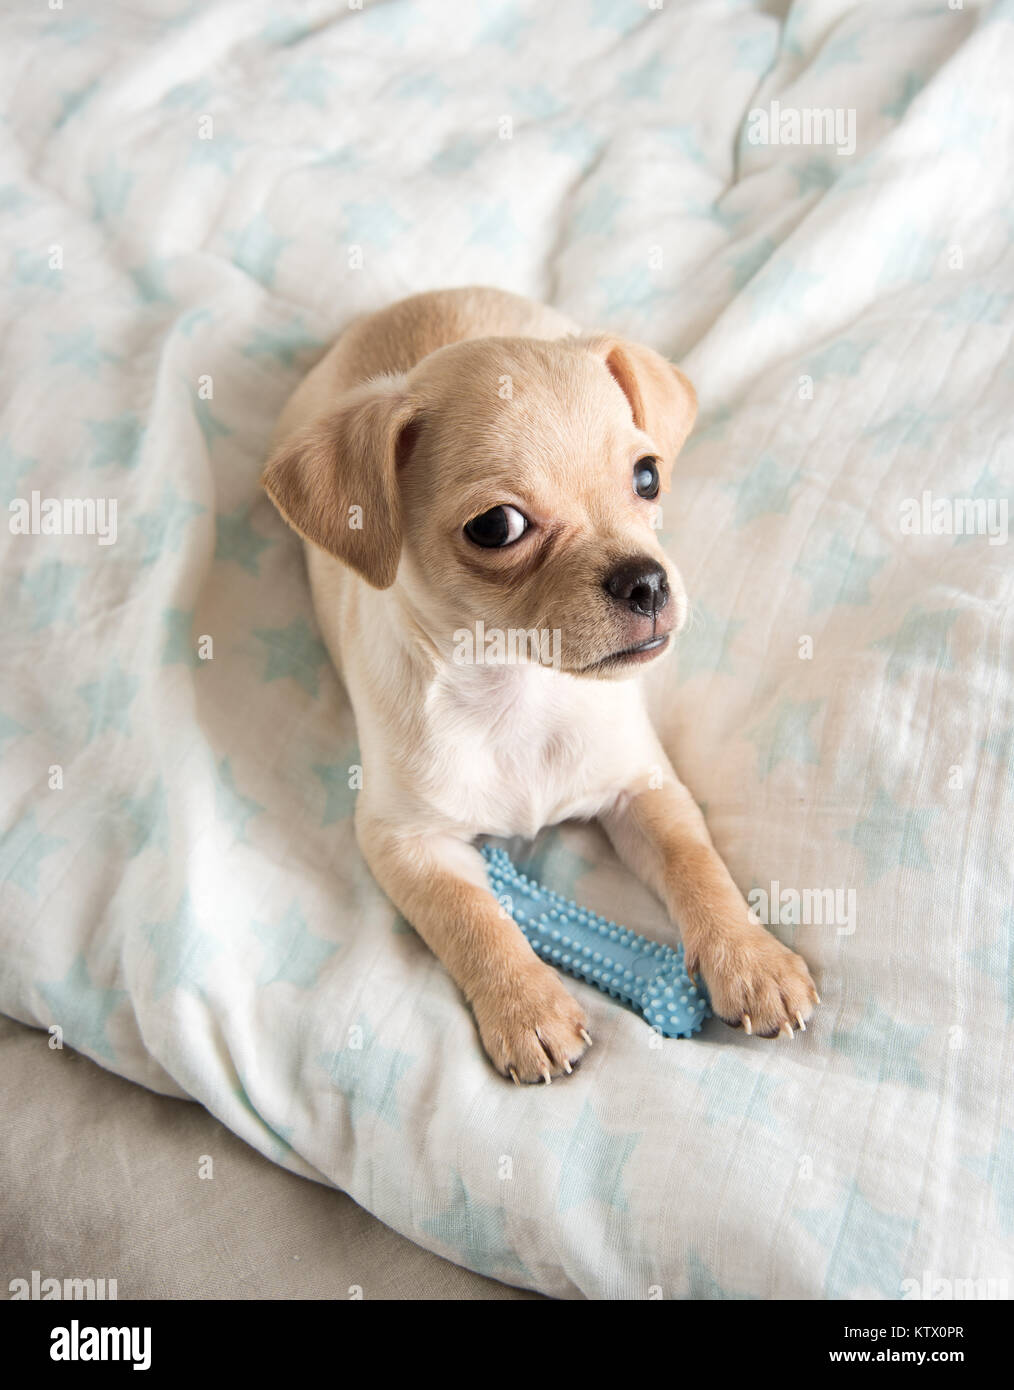 Tiny Chihuahua Puppy Chewing On Rubber Toy Stock Photo Alamy